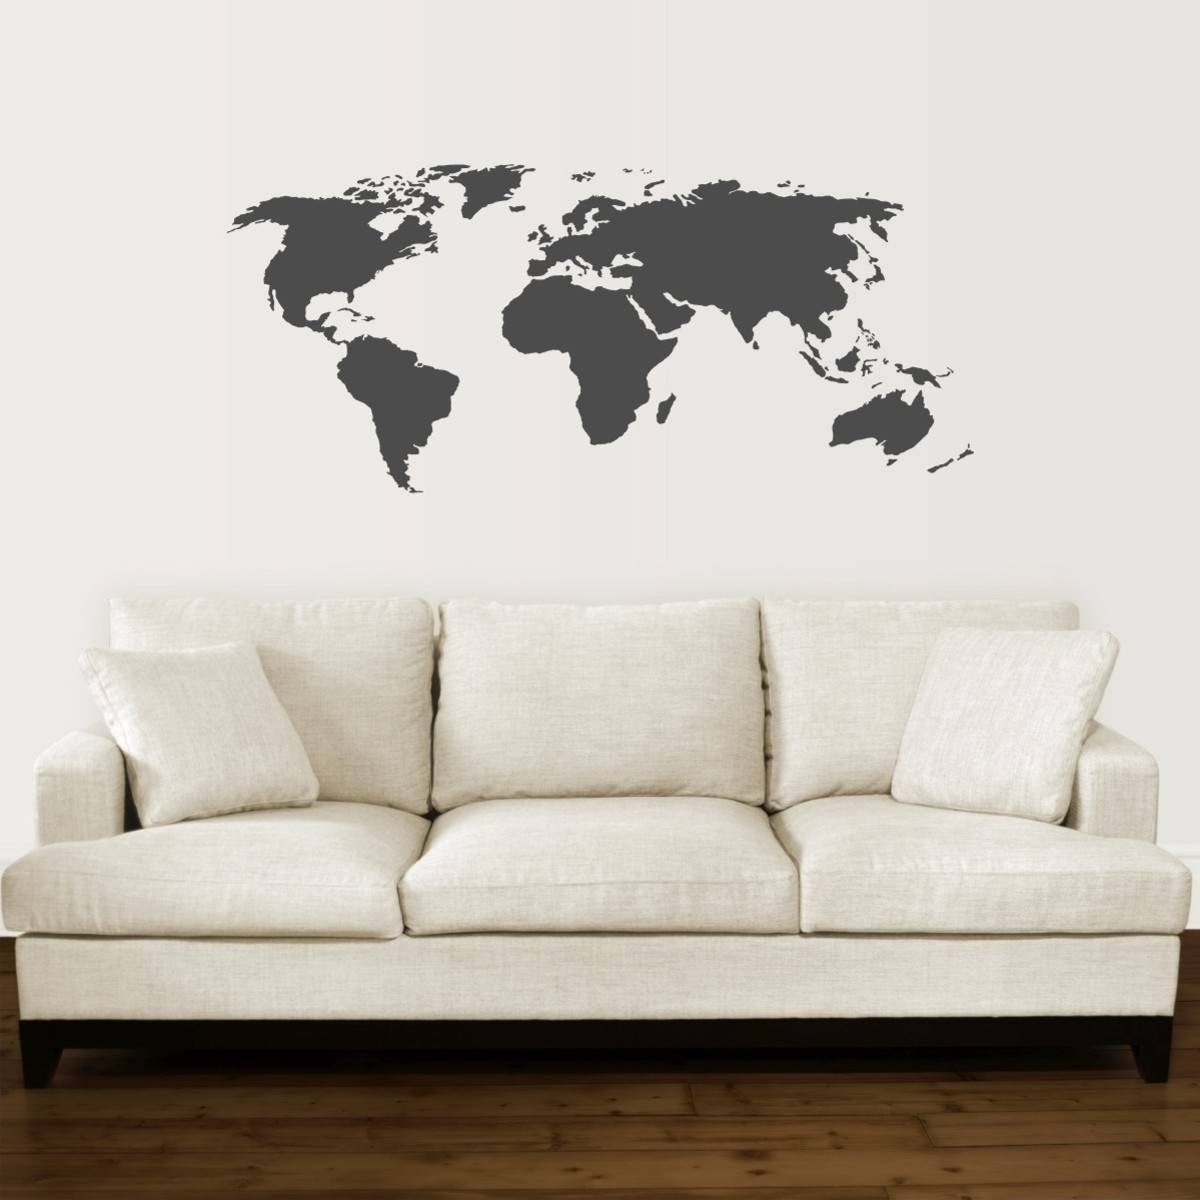 World Map Wall Quotes™ Wall Art Decal | Wallquotes Regarding Most Recently Released World Map Wall Art (View 16 of 20)